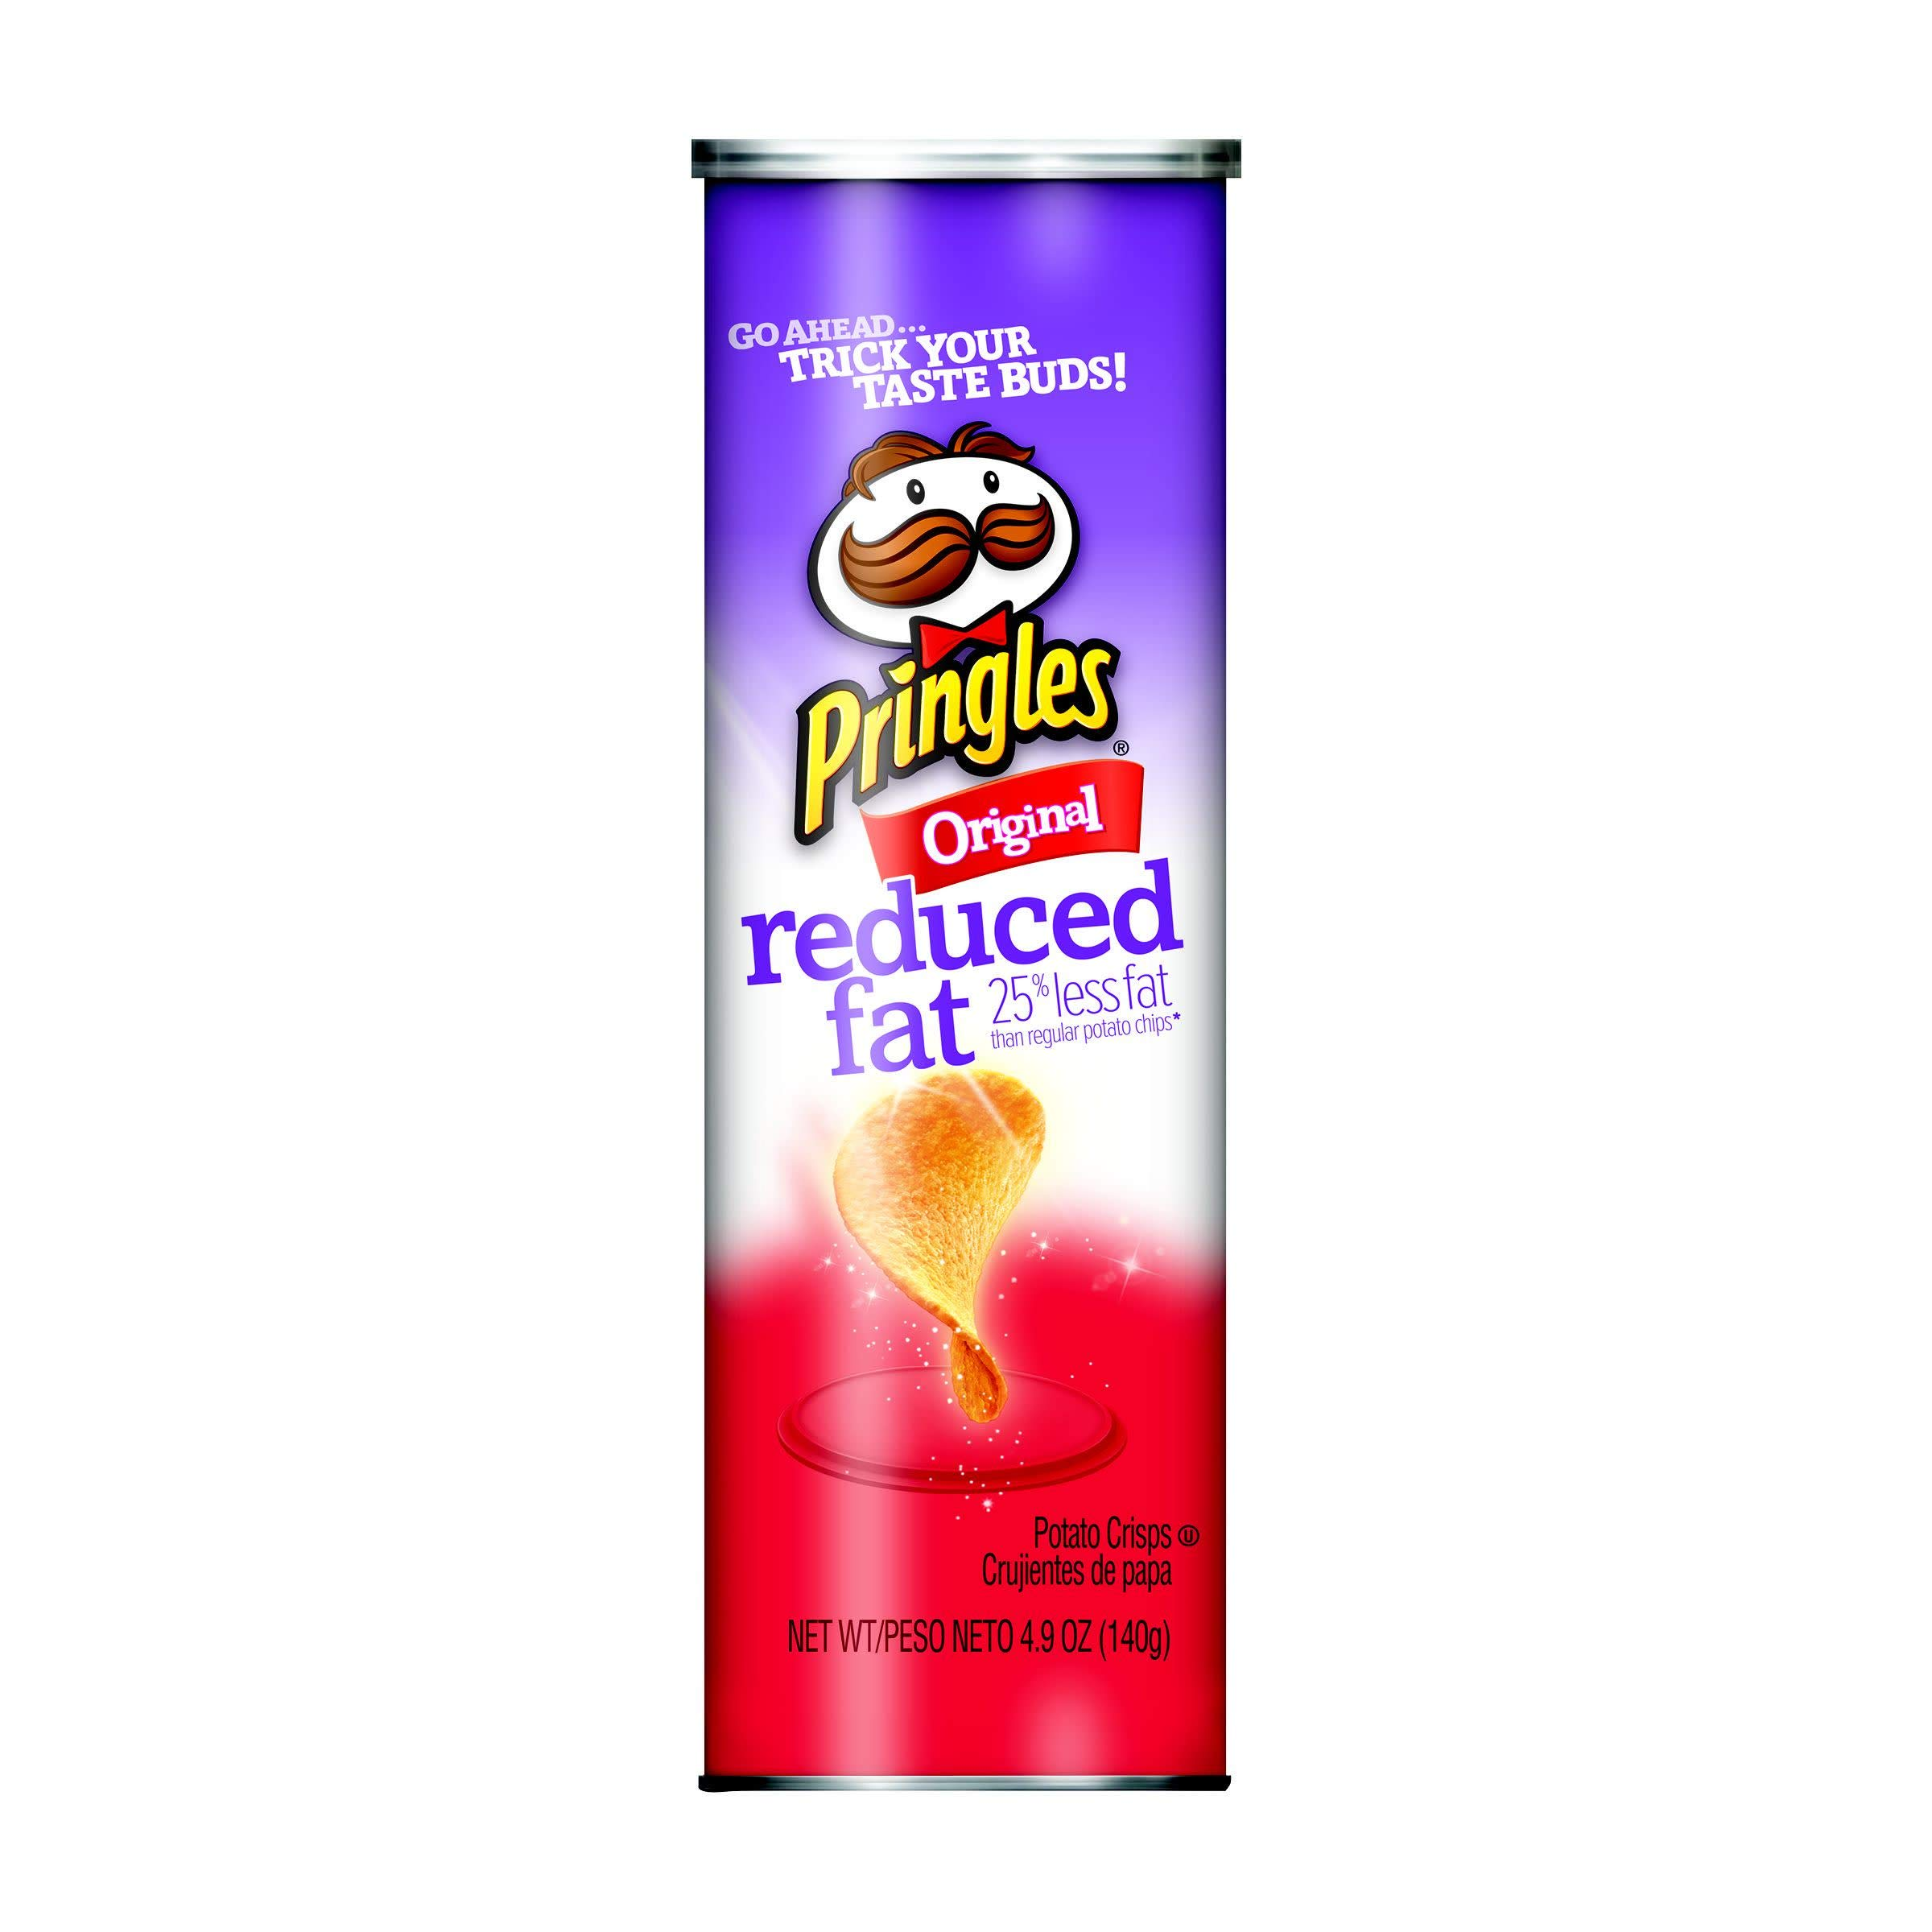 Pringles Potato Crisps Chips, Reduced Fat, Original Flavored, 4.9 oz Can by Pringles (Image #1)